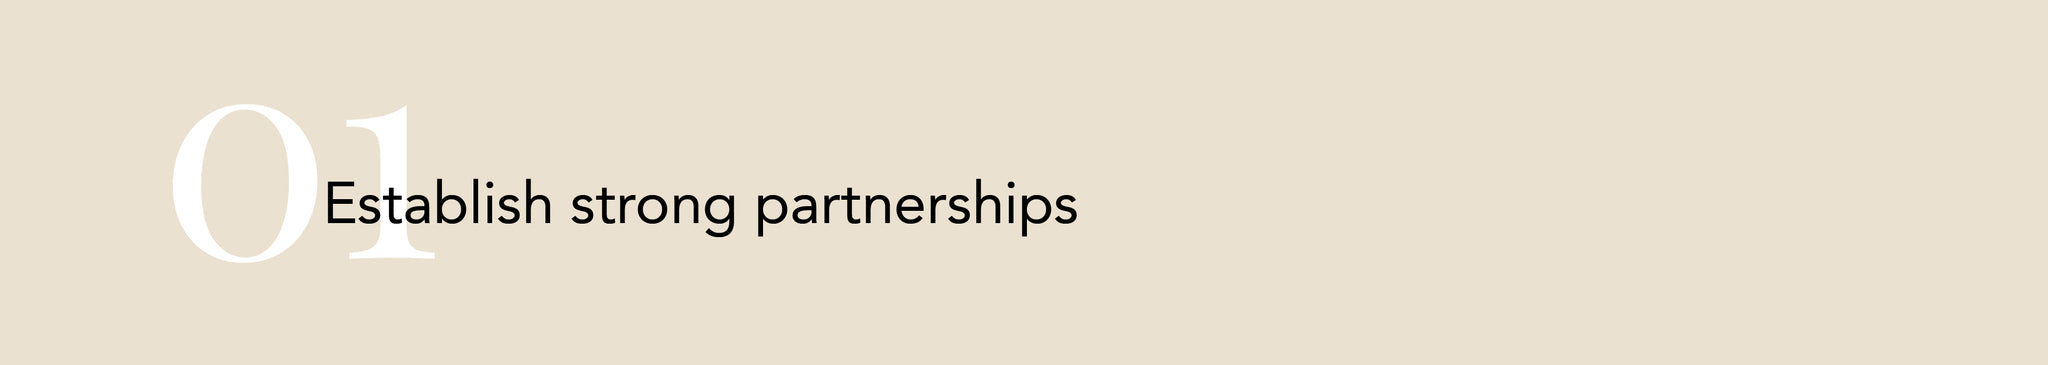 editionet_strong-partnerships